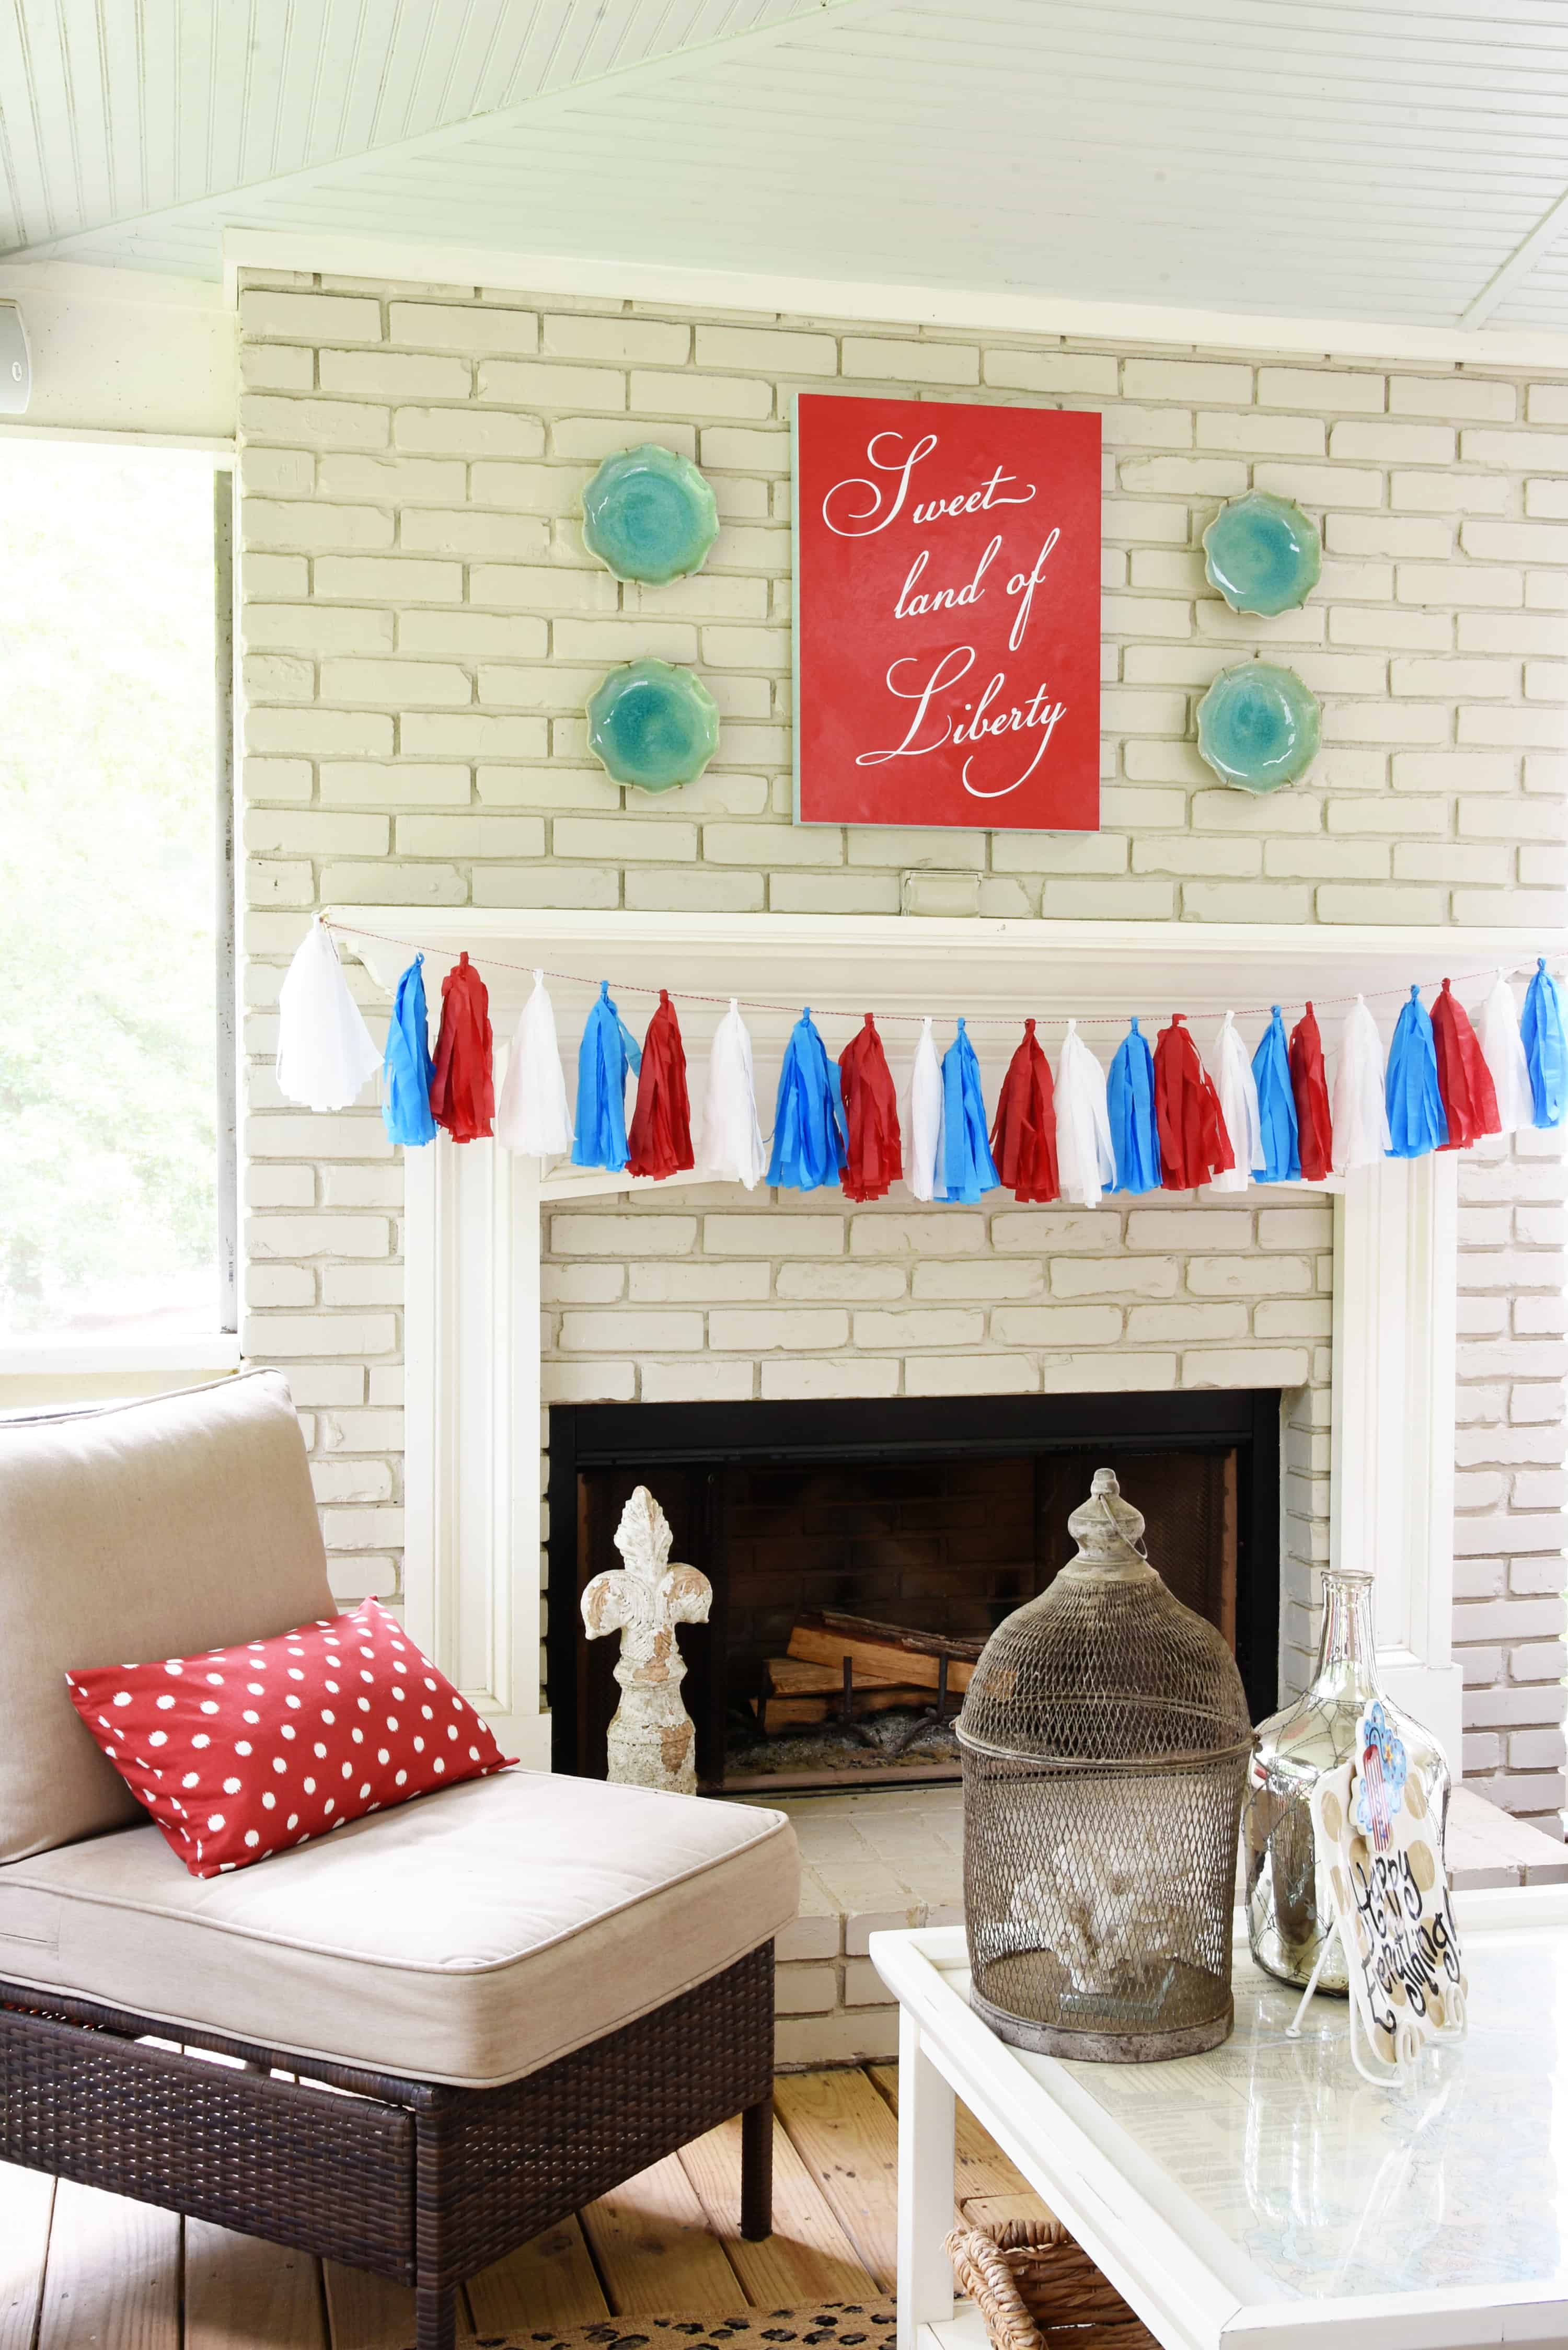 I Love Tissue Paper Tassels For Fun, Inexpensive Holiday Decor